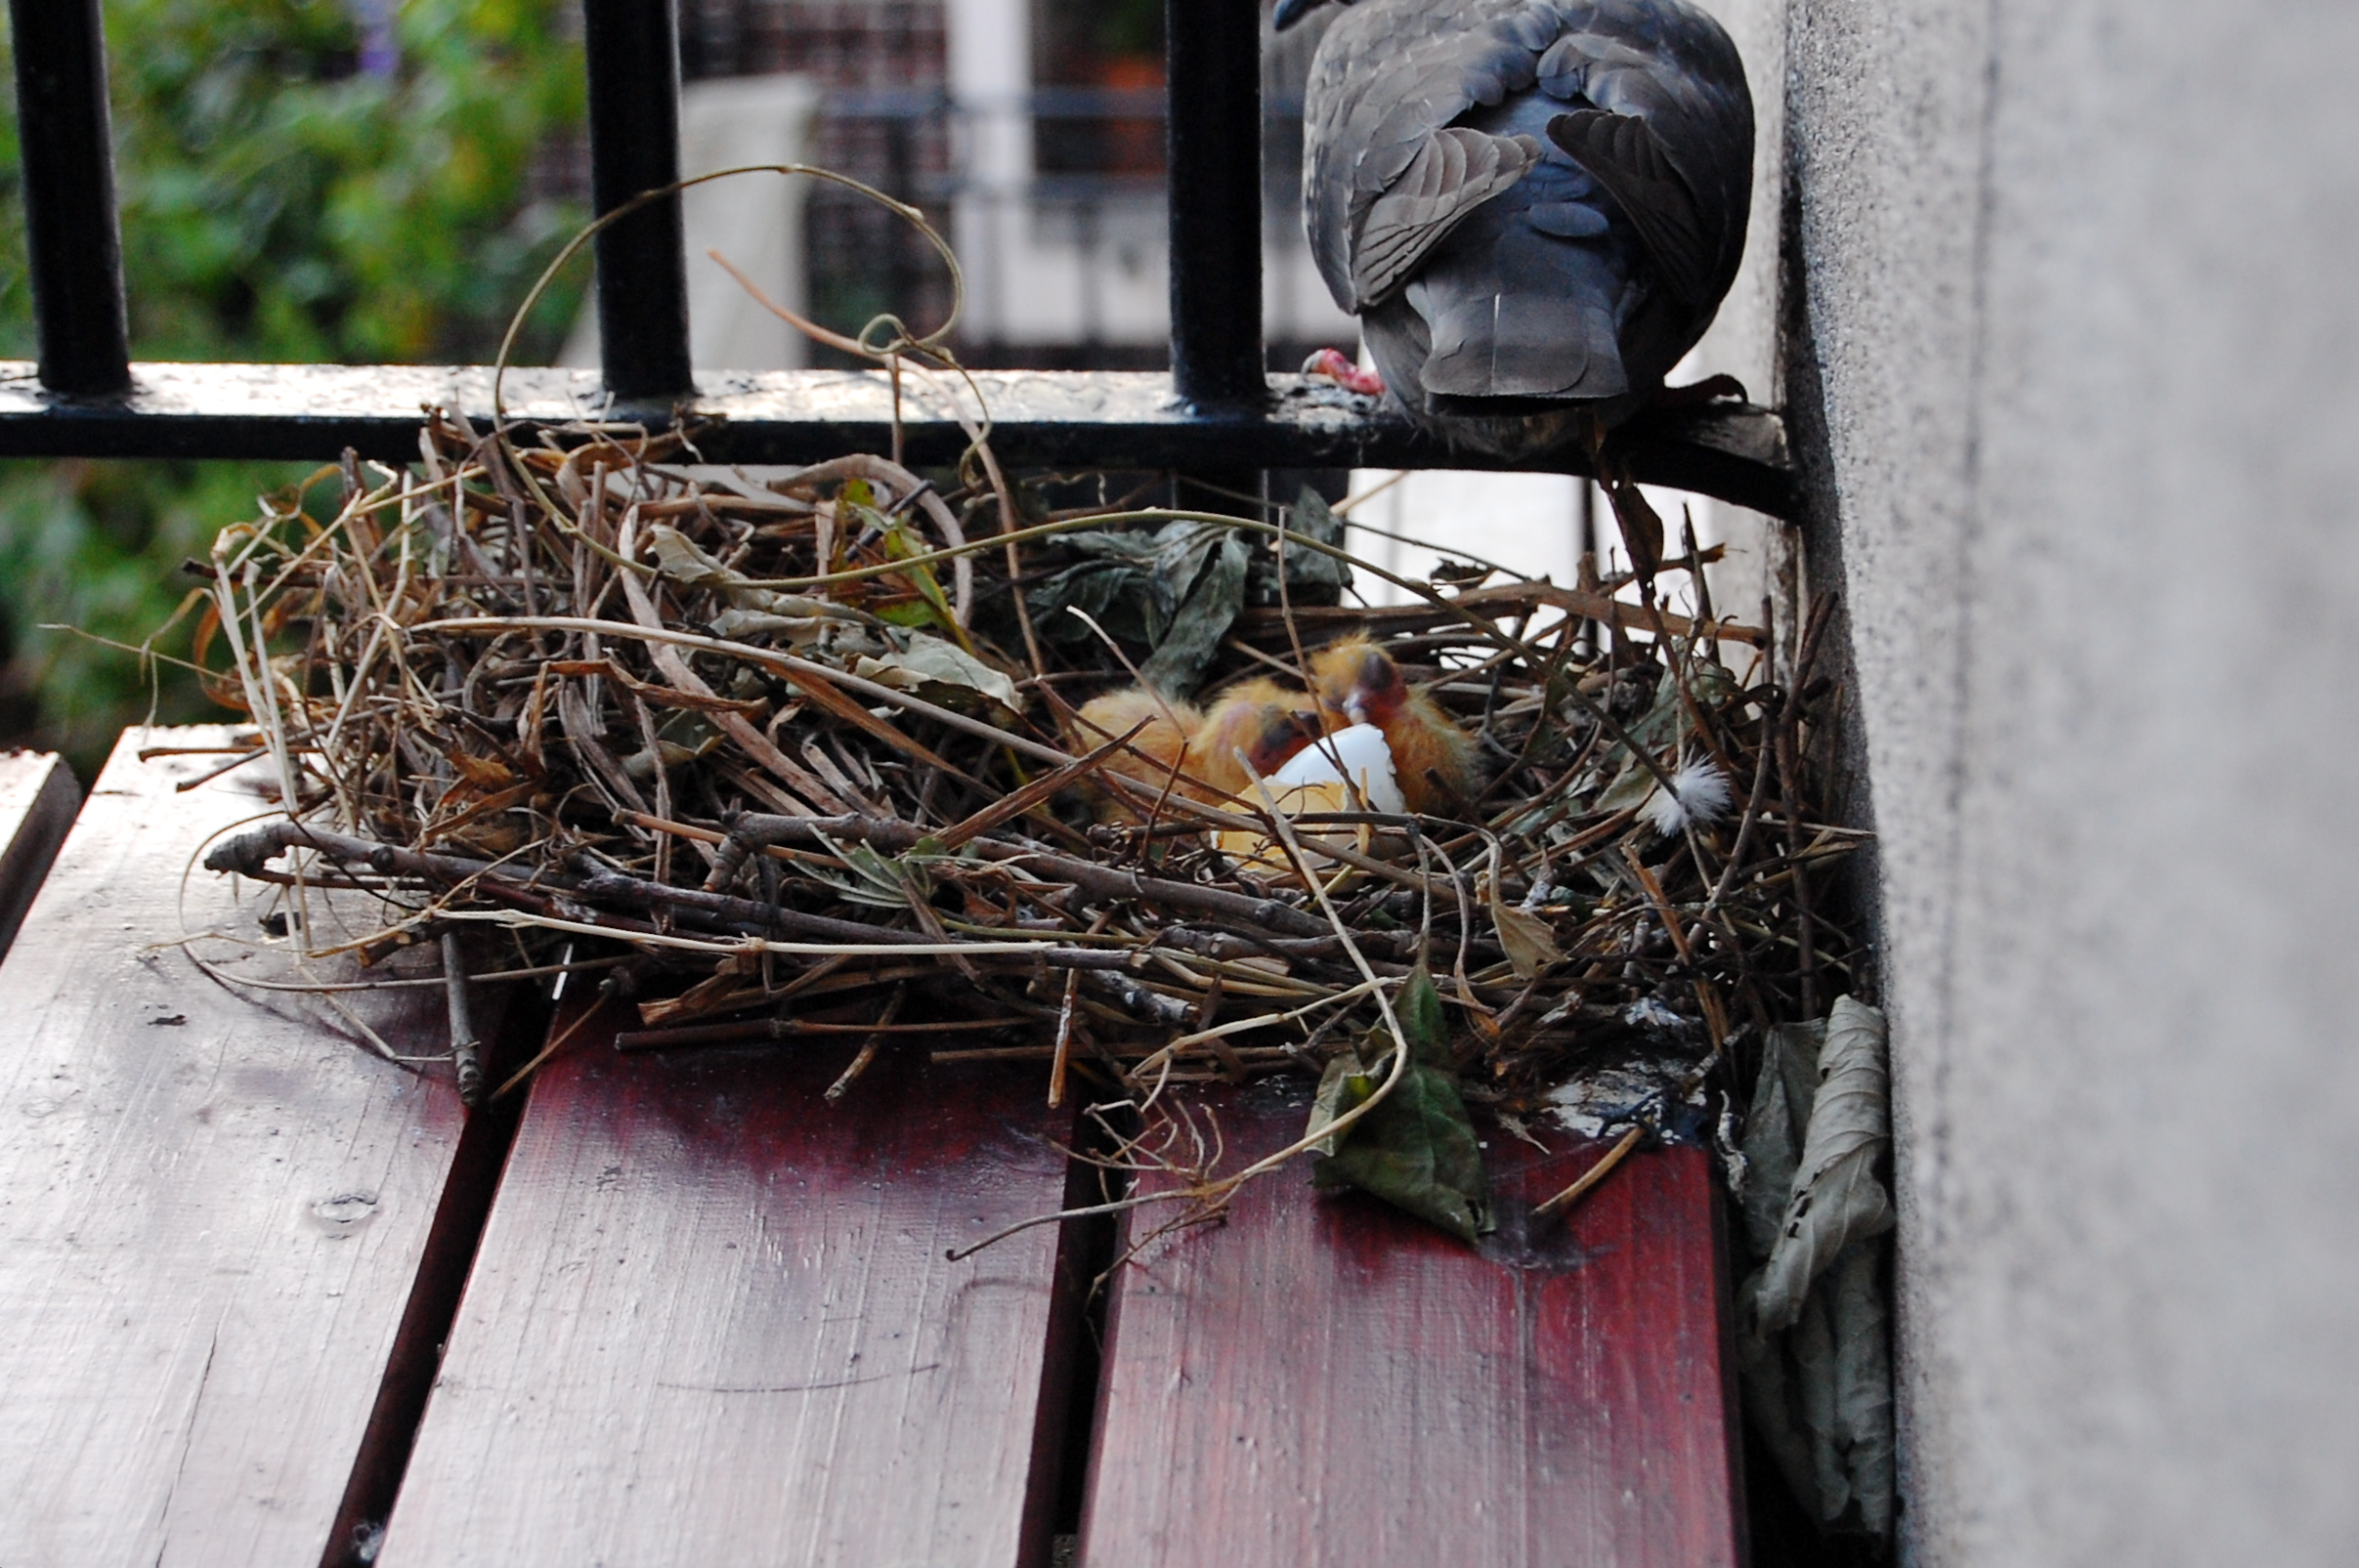 Looking To Get Rid Of Pigeons Effective Wildlife Solutions